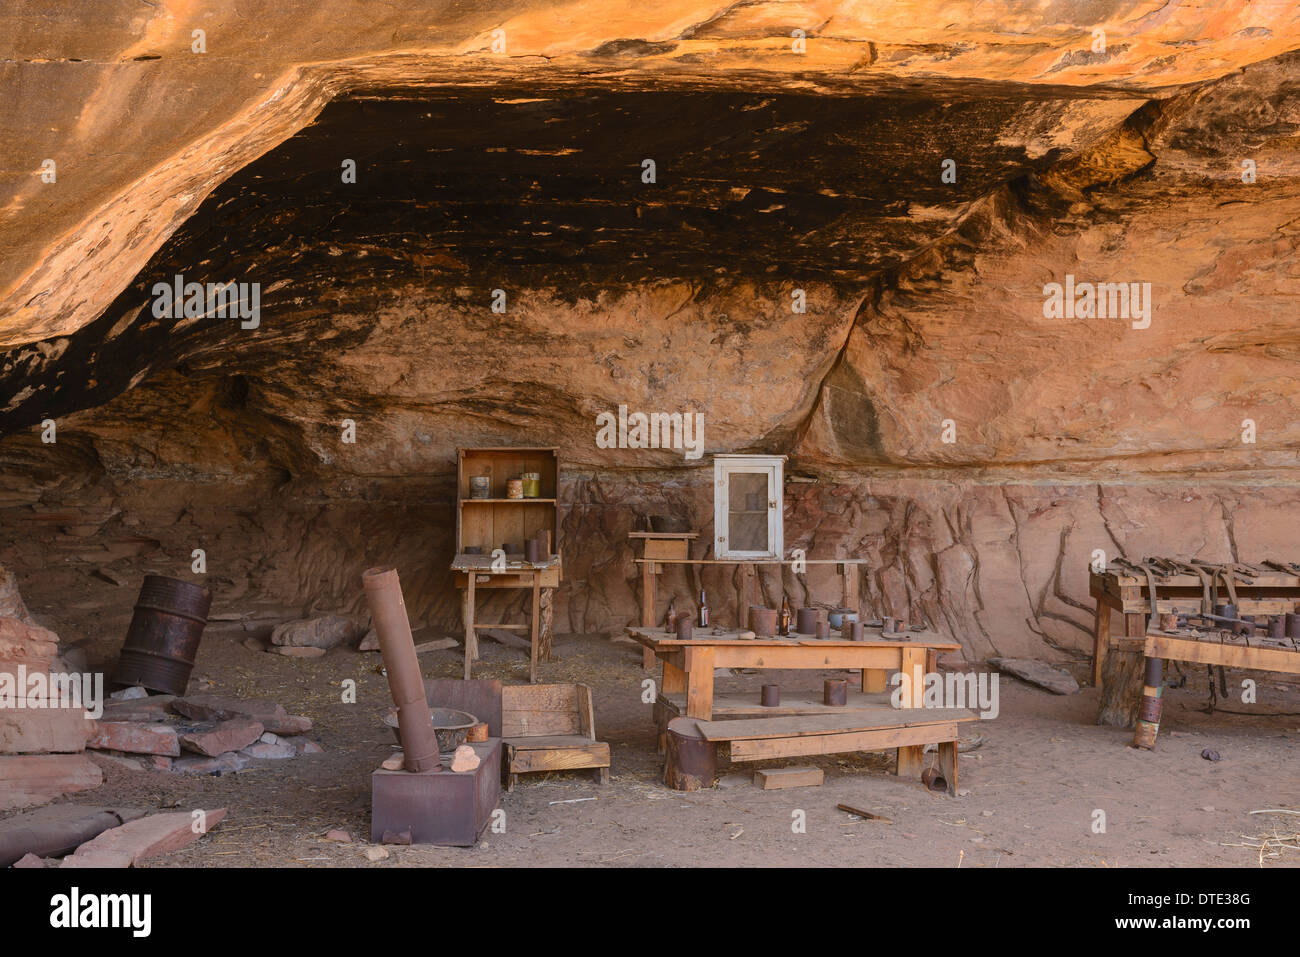 Remains of an old cowboy camp, near Cave Springs, The Needles section of Canyonlands National Park, Utah, USA - Stock Image